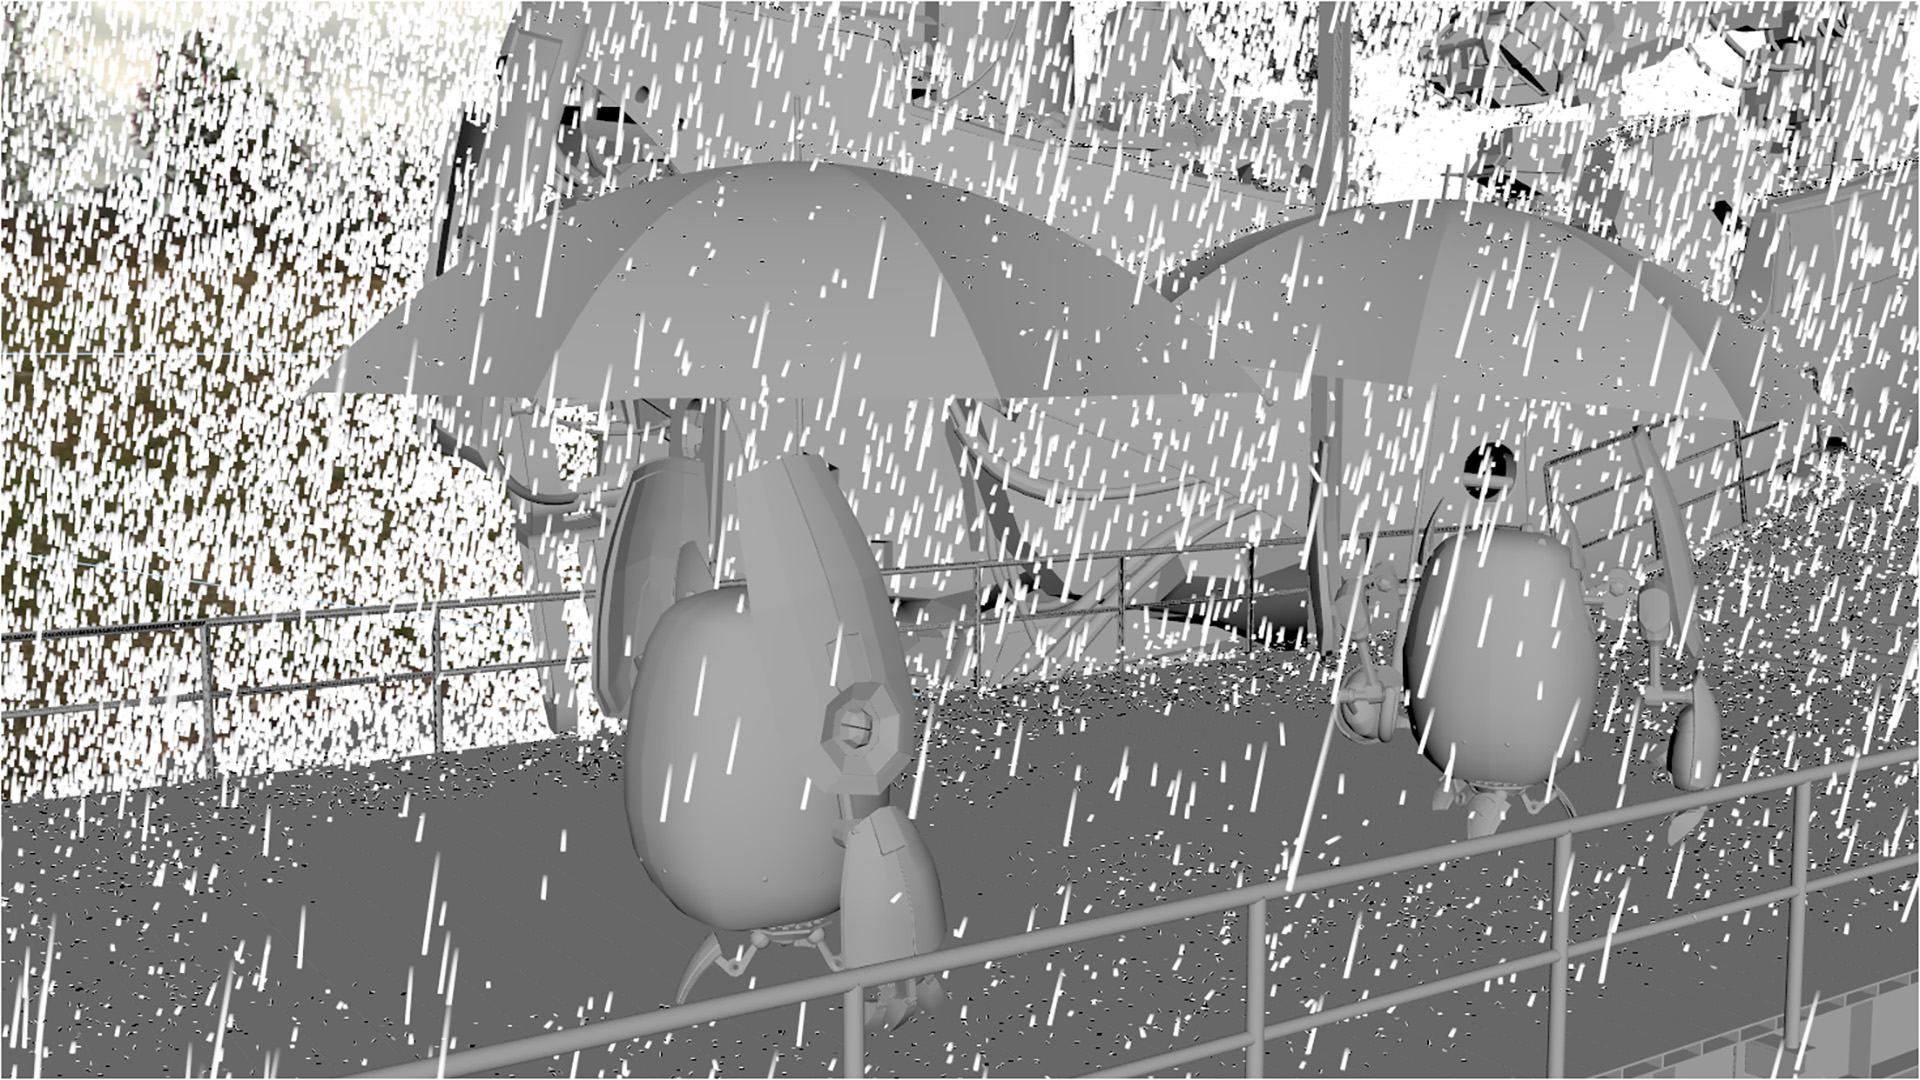 Figure 39: Closeup of a work-in-progress version of the rain sim. Note how the umbrellas properly block rain from falling on the robots under the umbrellas.